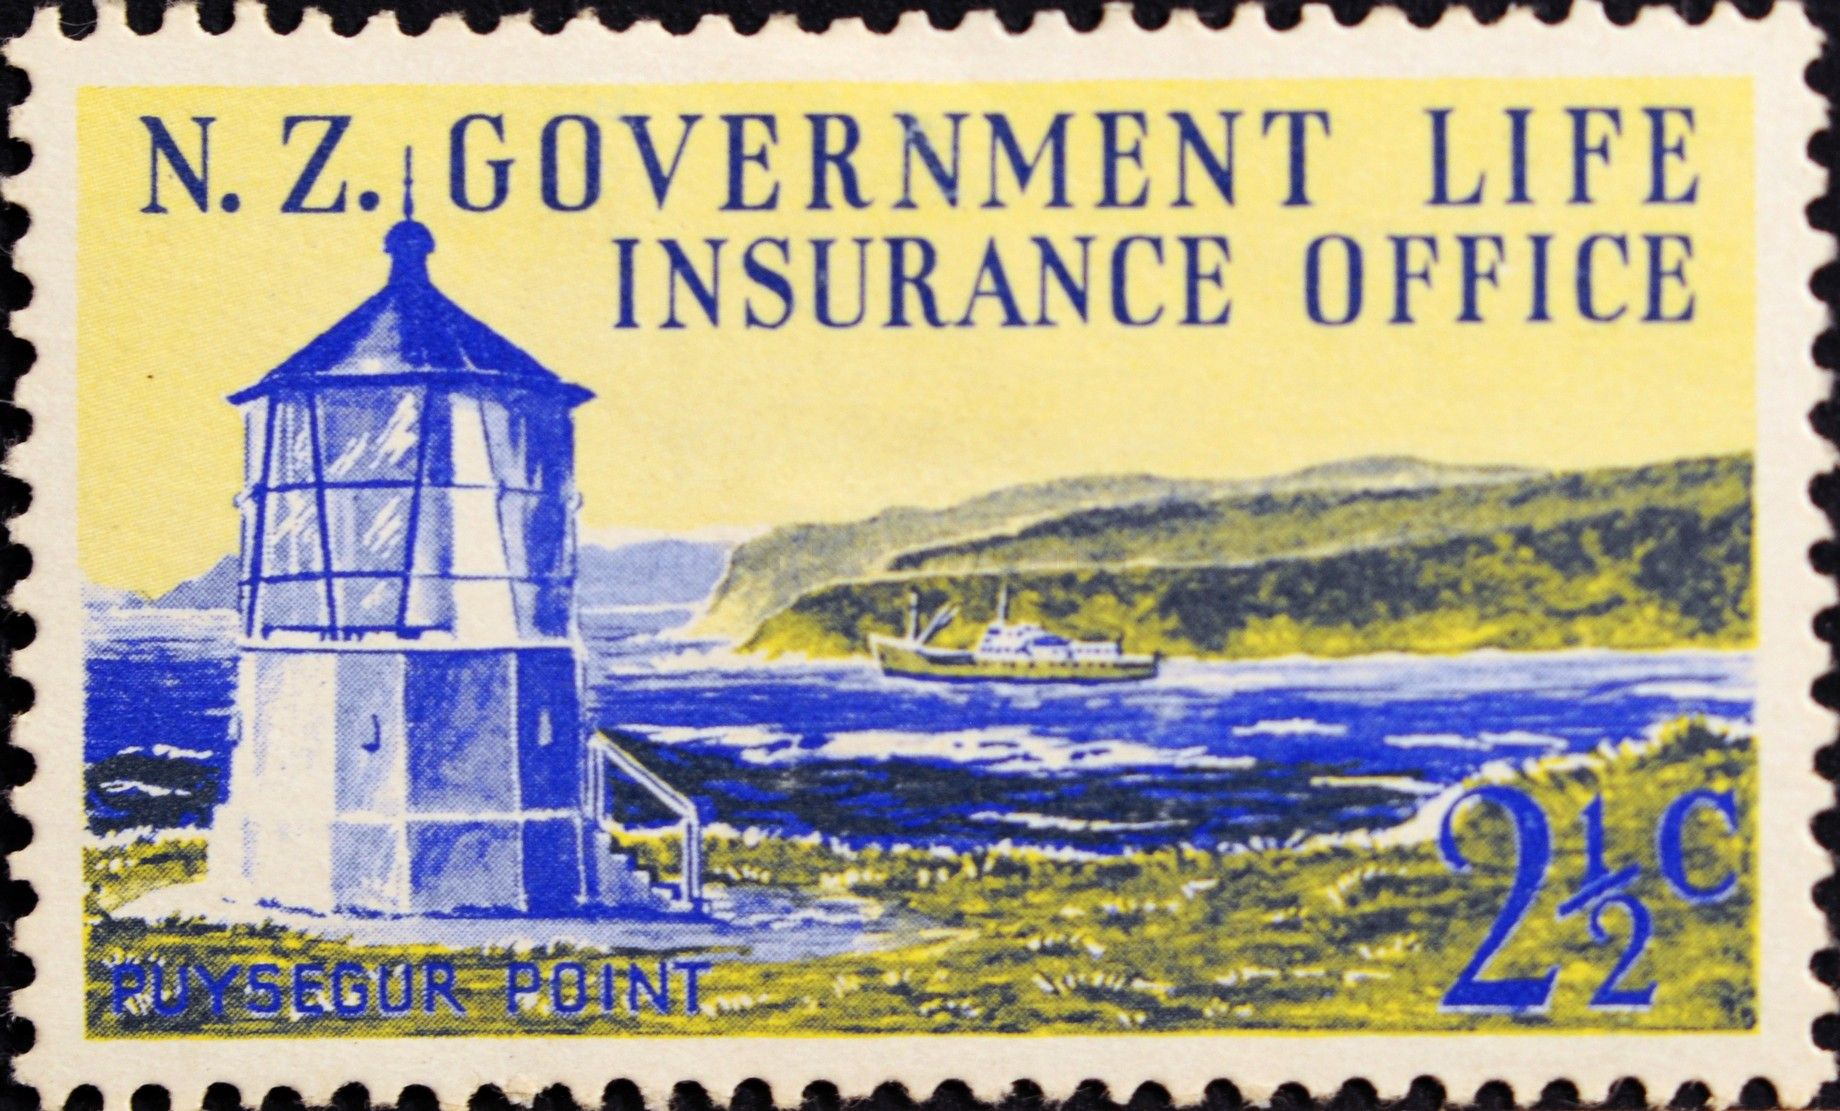 New Zealand (250) 1969 Life Insurance Department